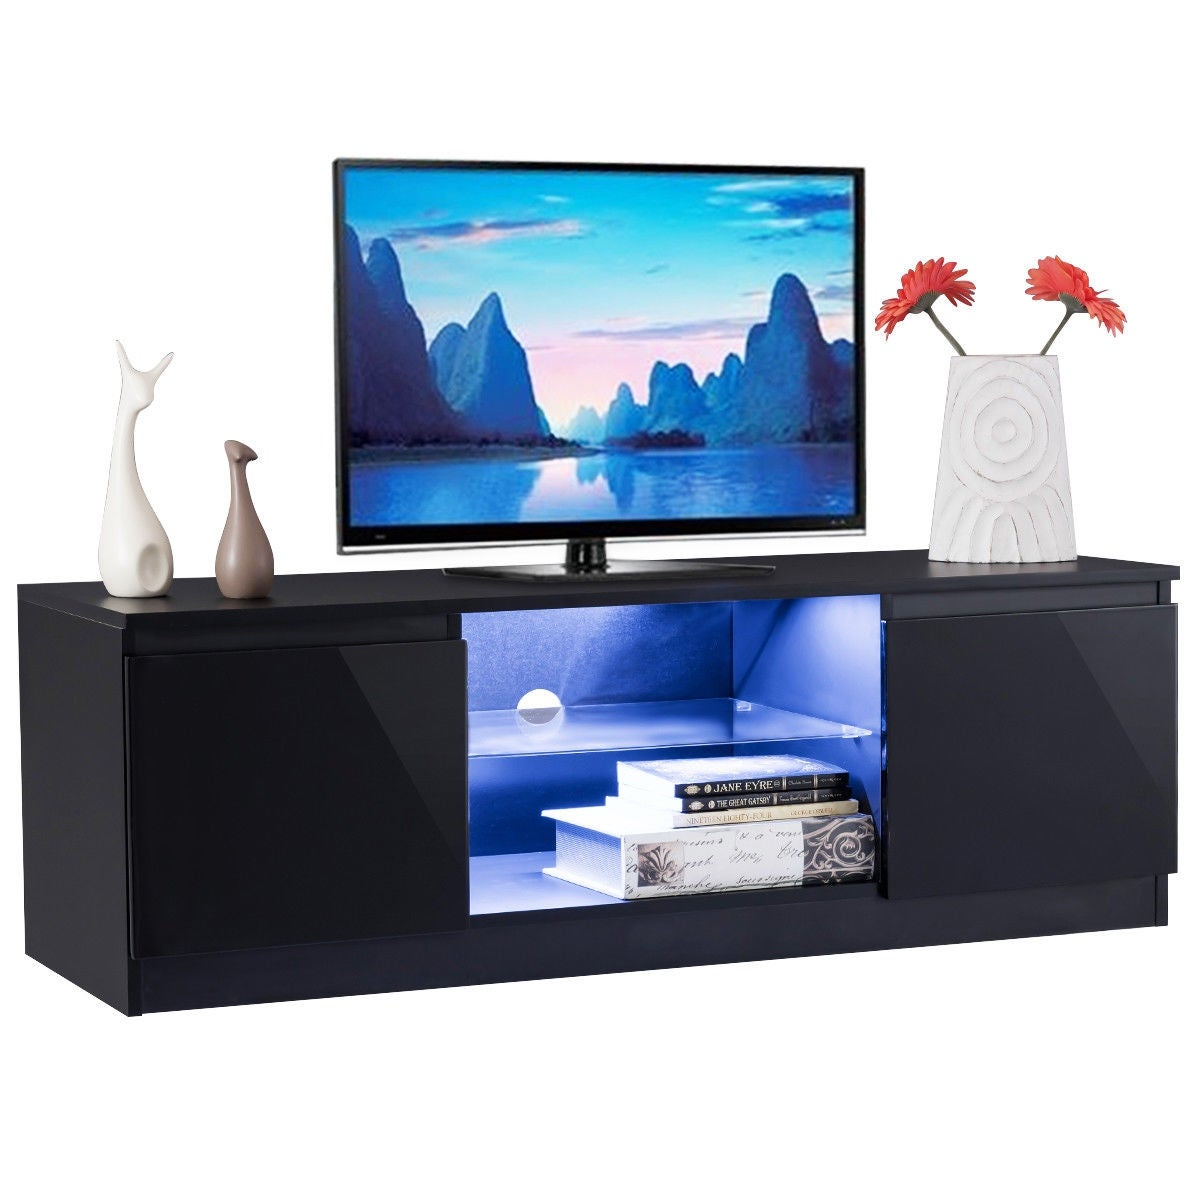 Costway High Gloss Tv Stand Unit Cabinet Media Console Furniture W Led Shelves Black Free Shipping Today 20510047